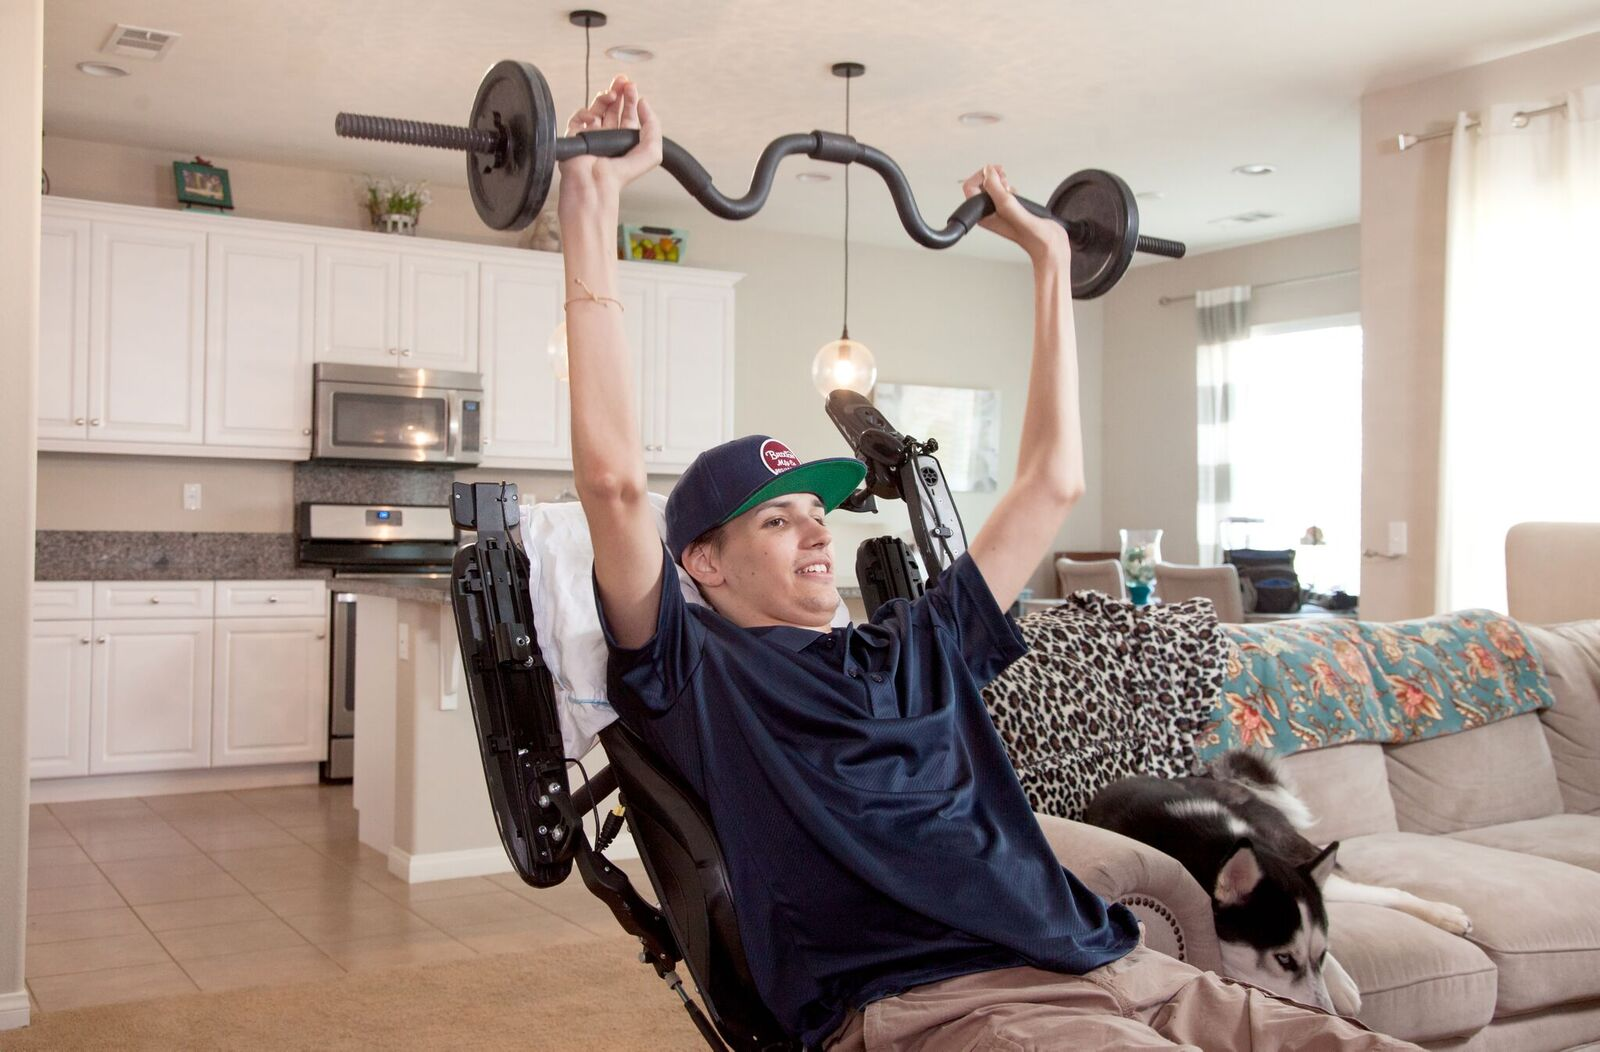 Young man with spinal cord injury regains use of hands and